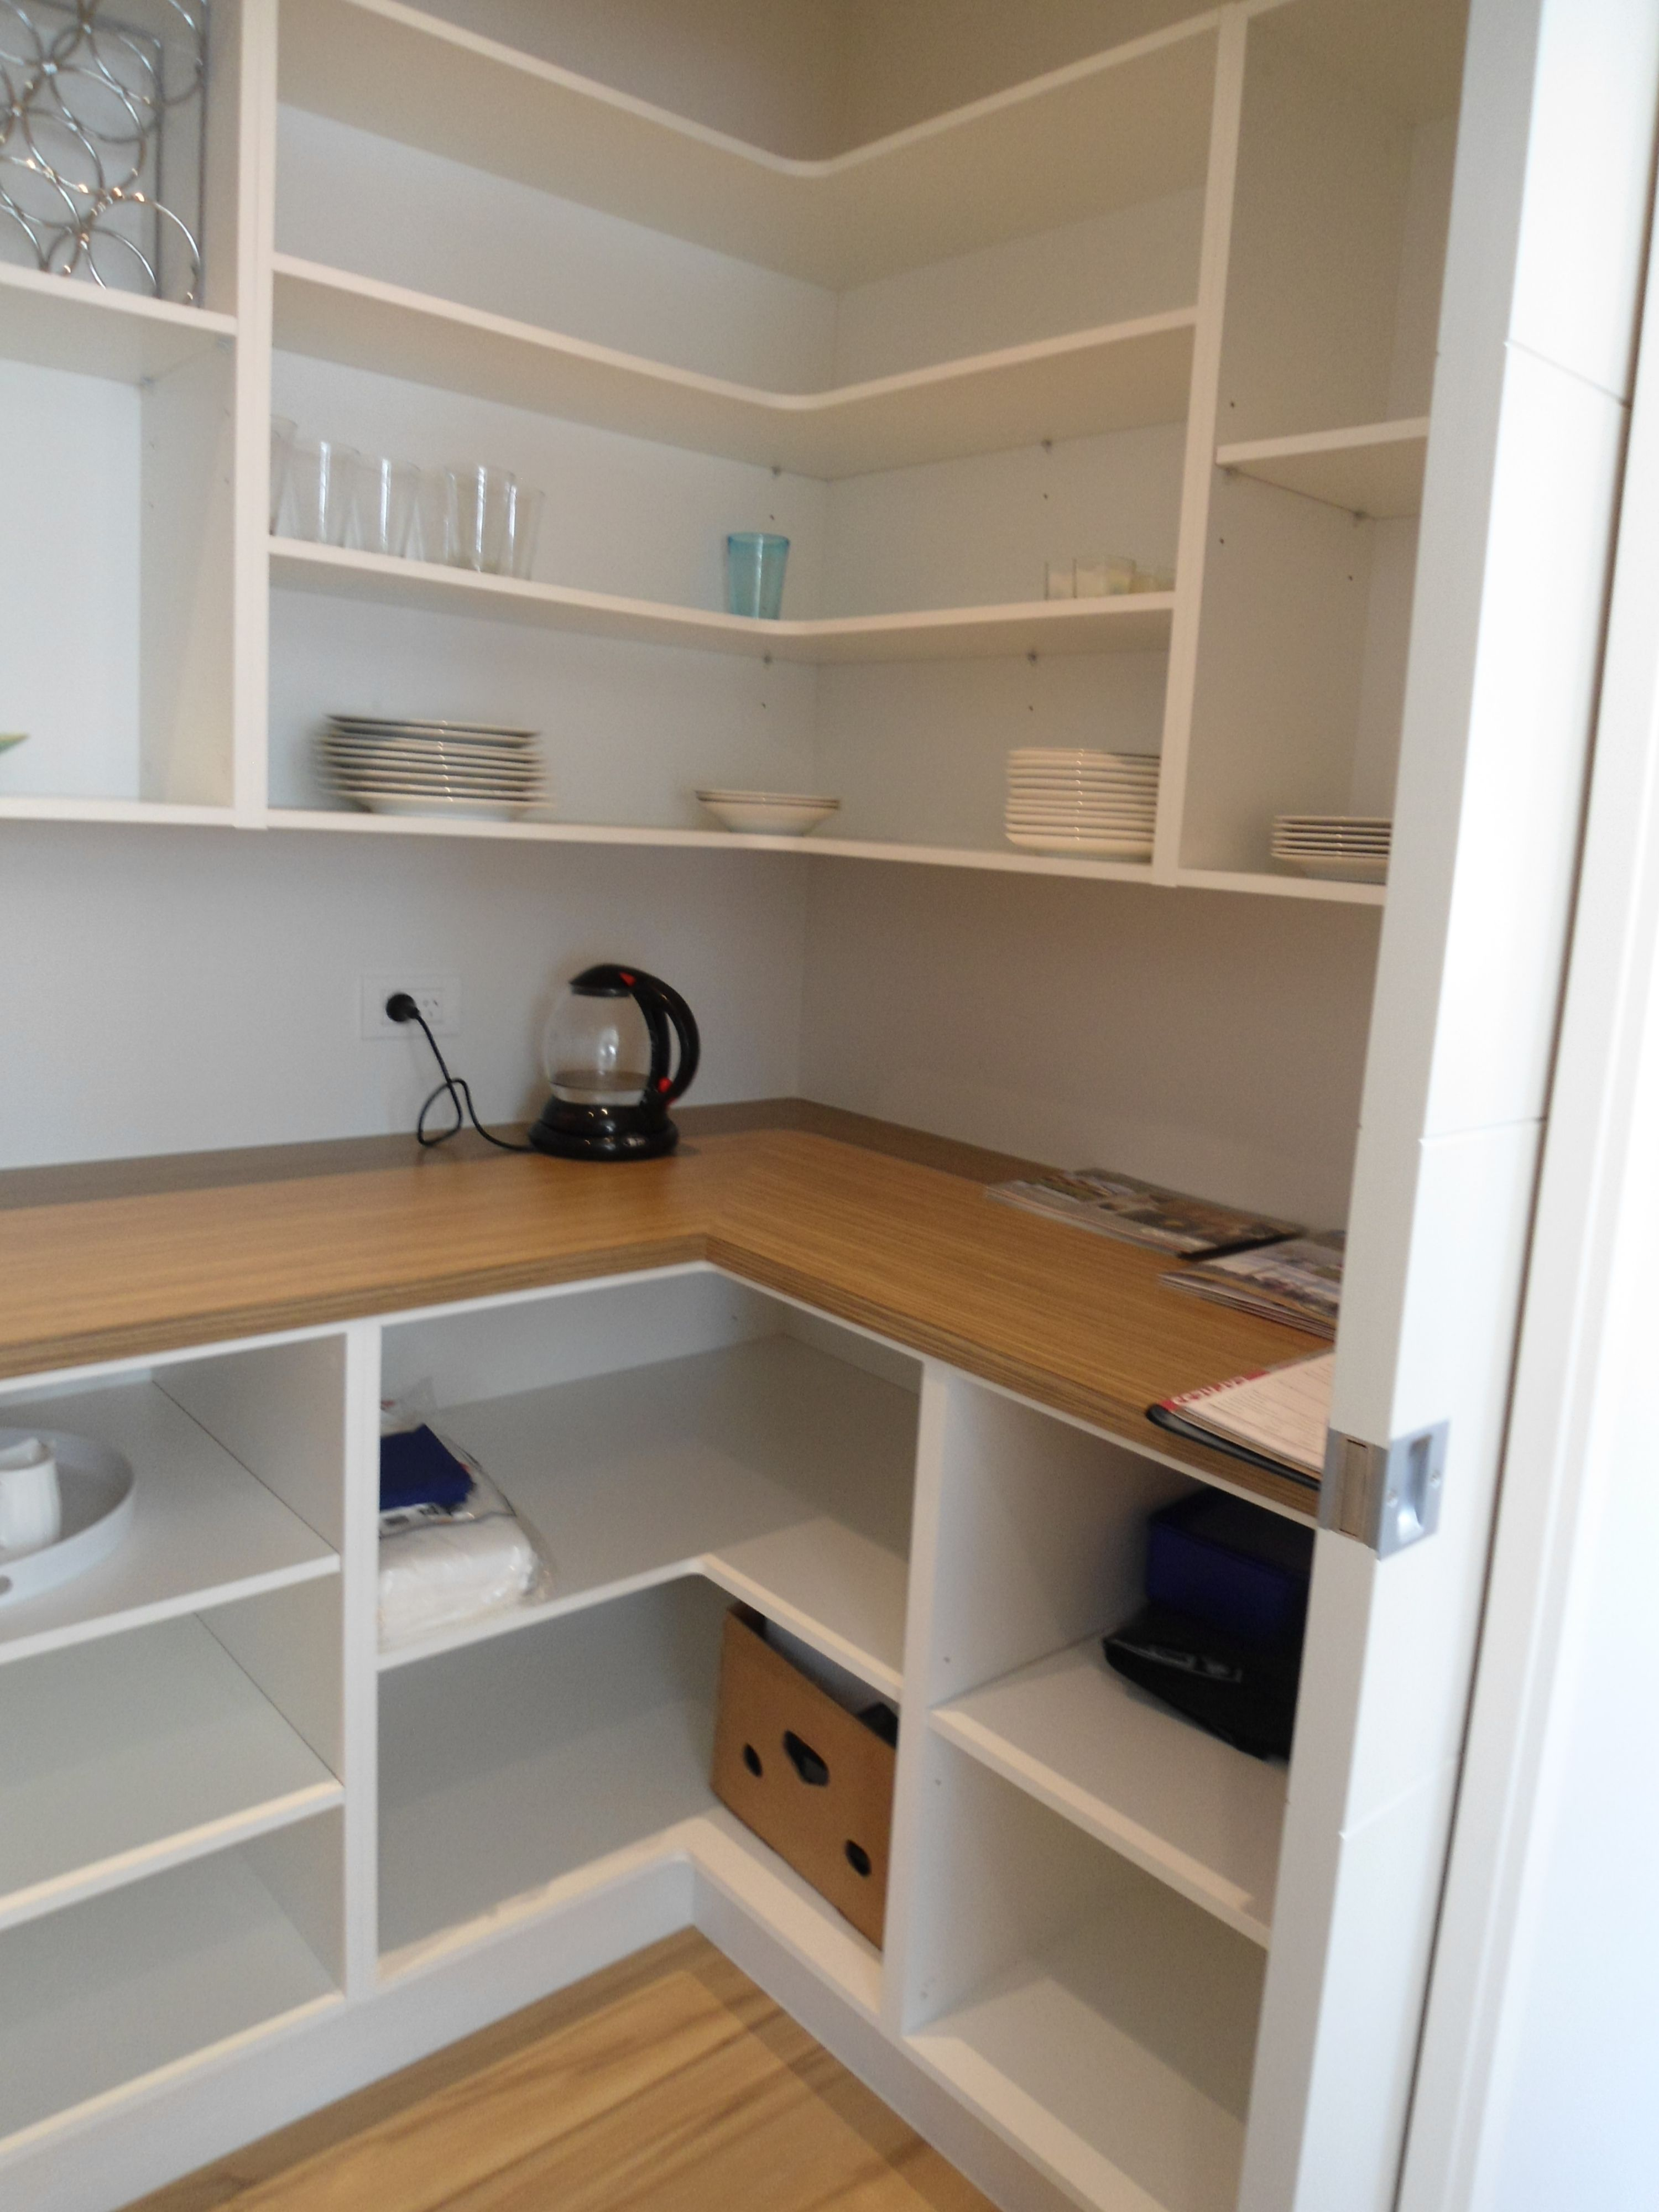 Pantry Shelves Pantry Storage Bottom Pantry Shelves A Bit Too Deep It Would Be A